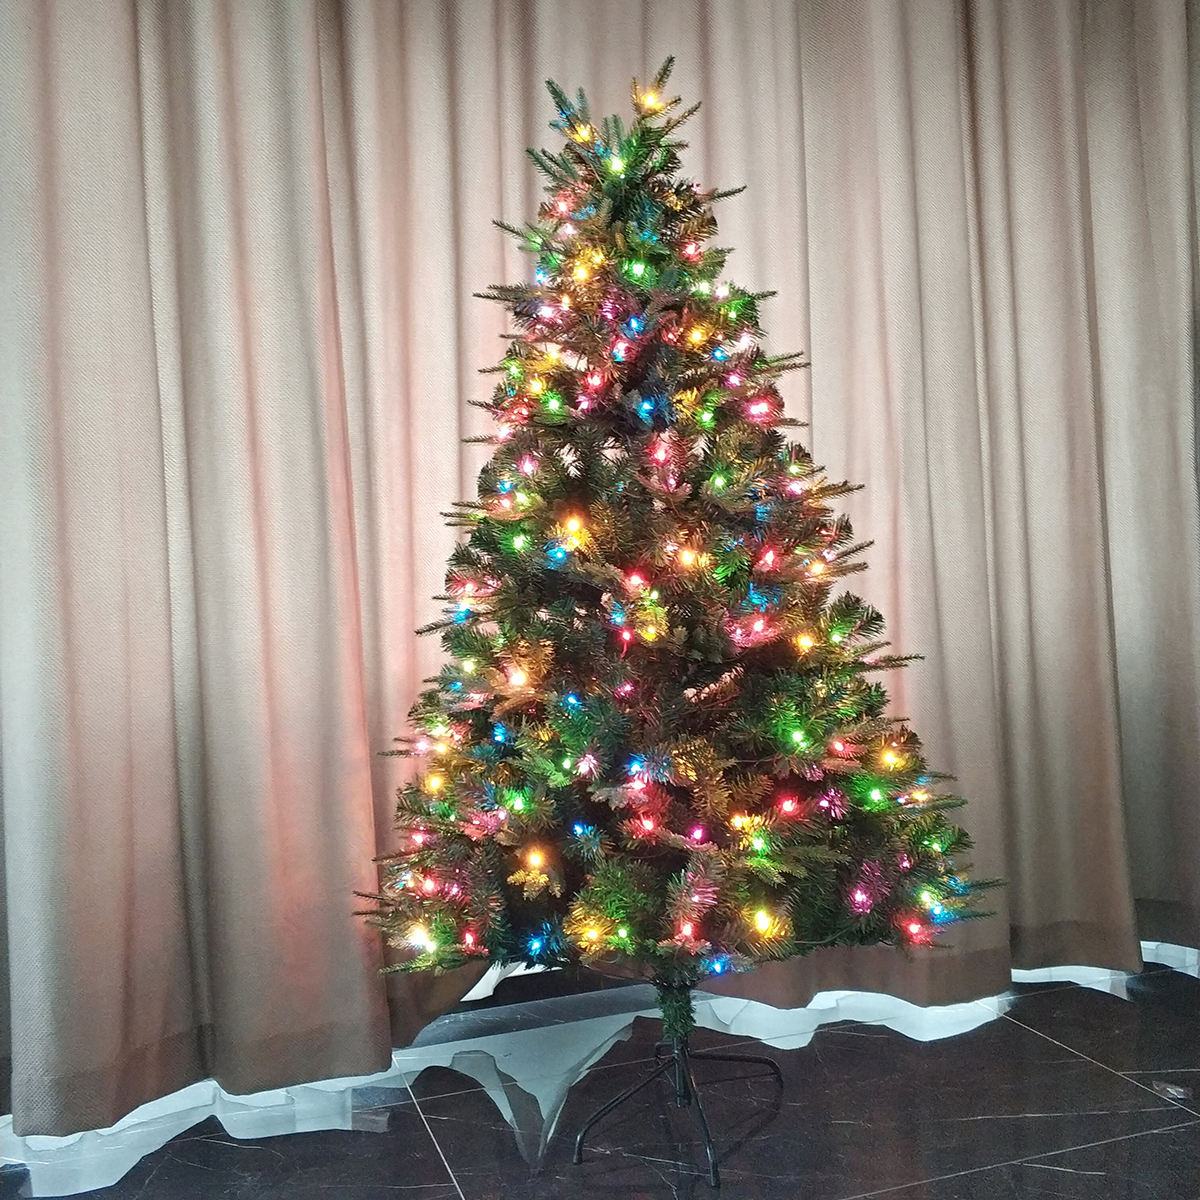 New Arrived Pre-lit Artificia Christmas Tree With Led Lights